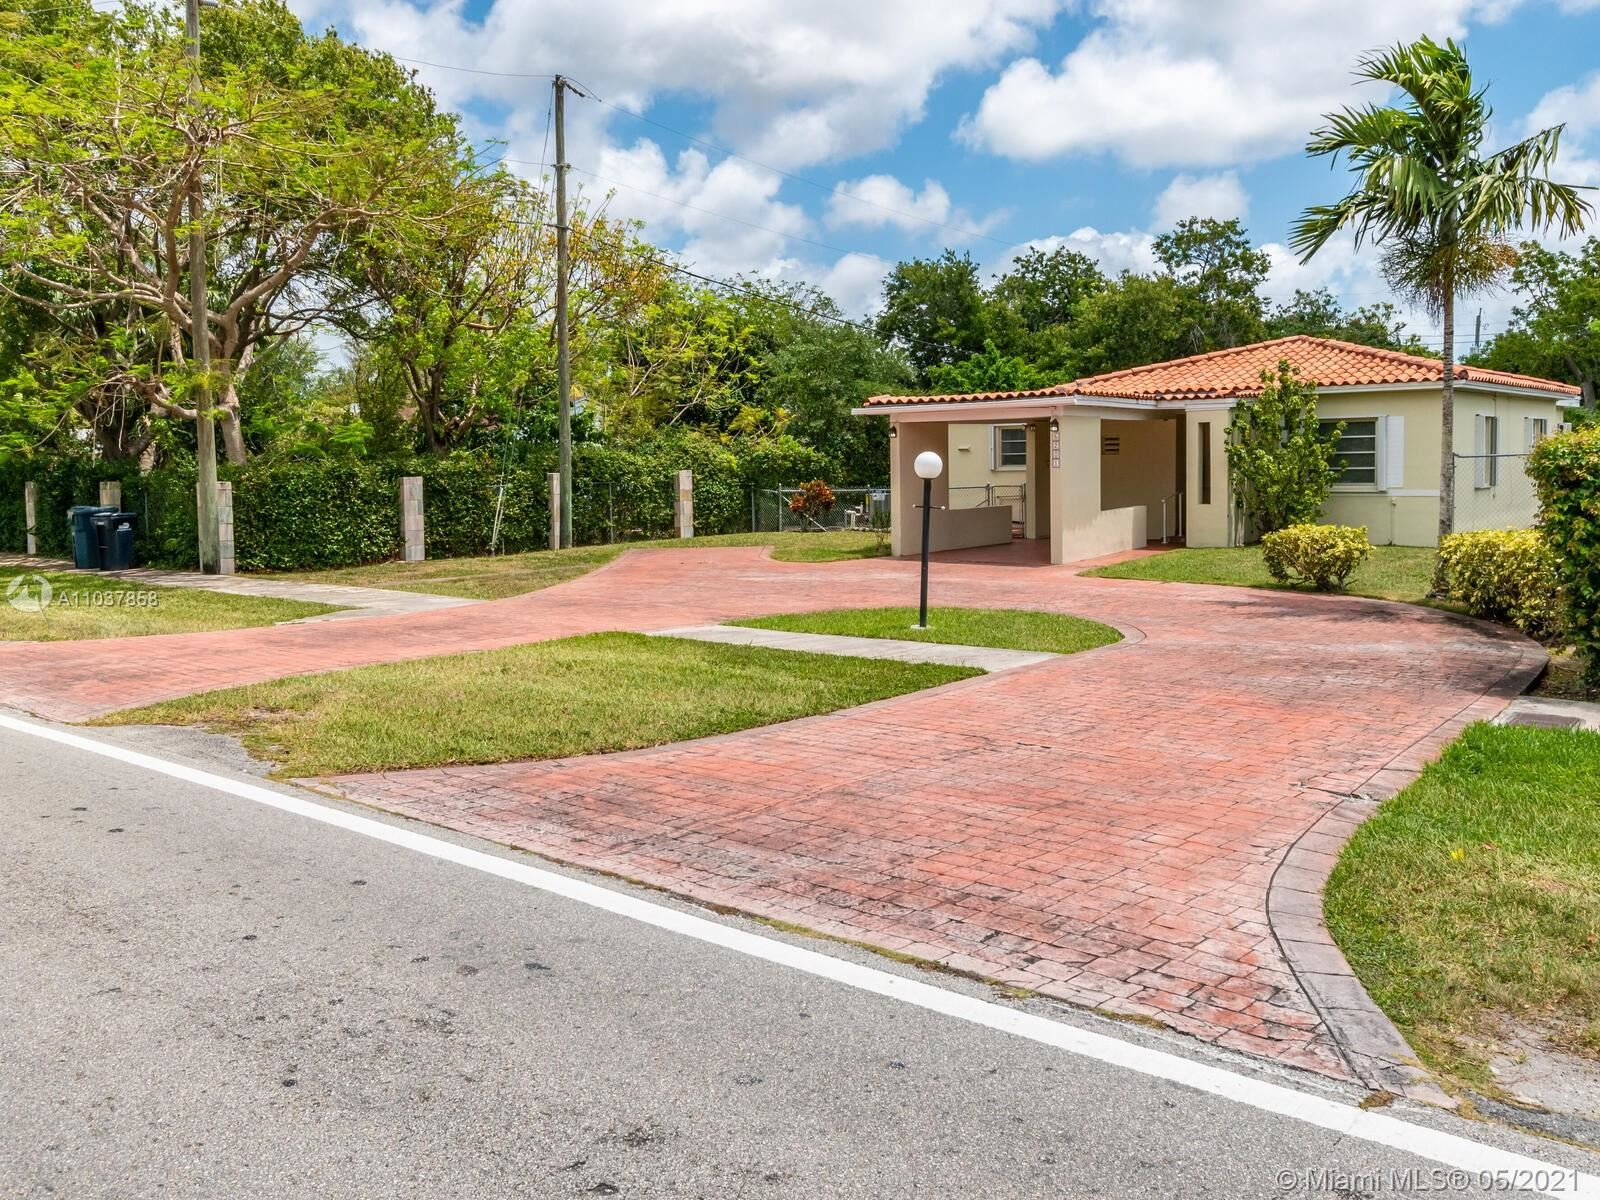 Photo of 5201 SW 67th Ave, South Miami, FL 33155 (MLS # A11037858)